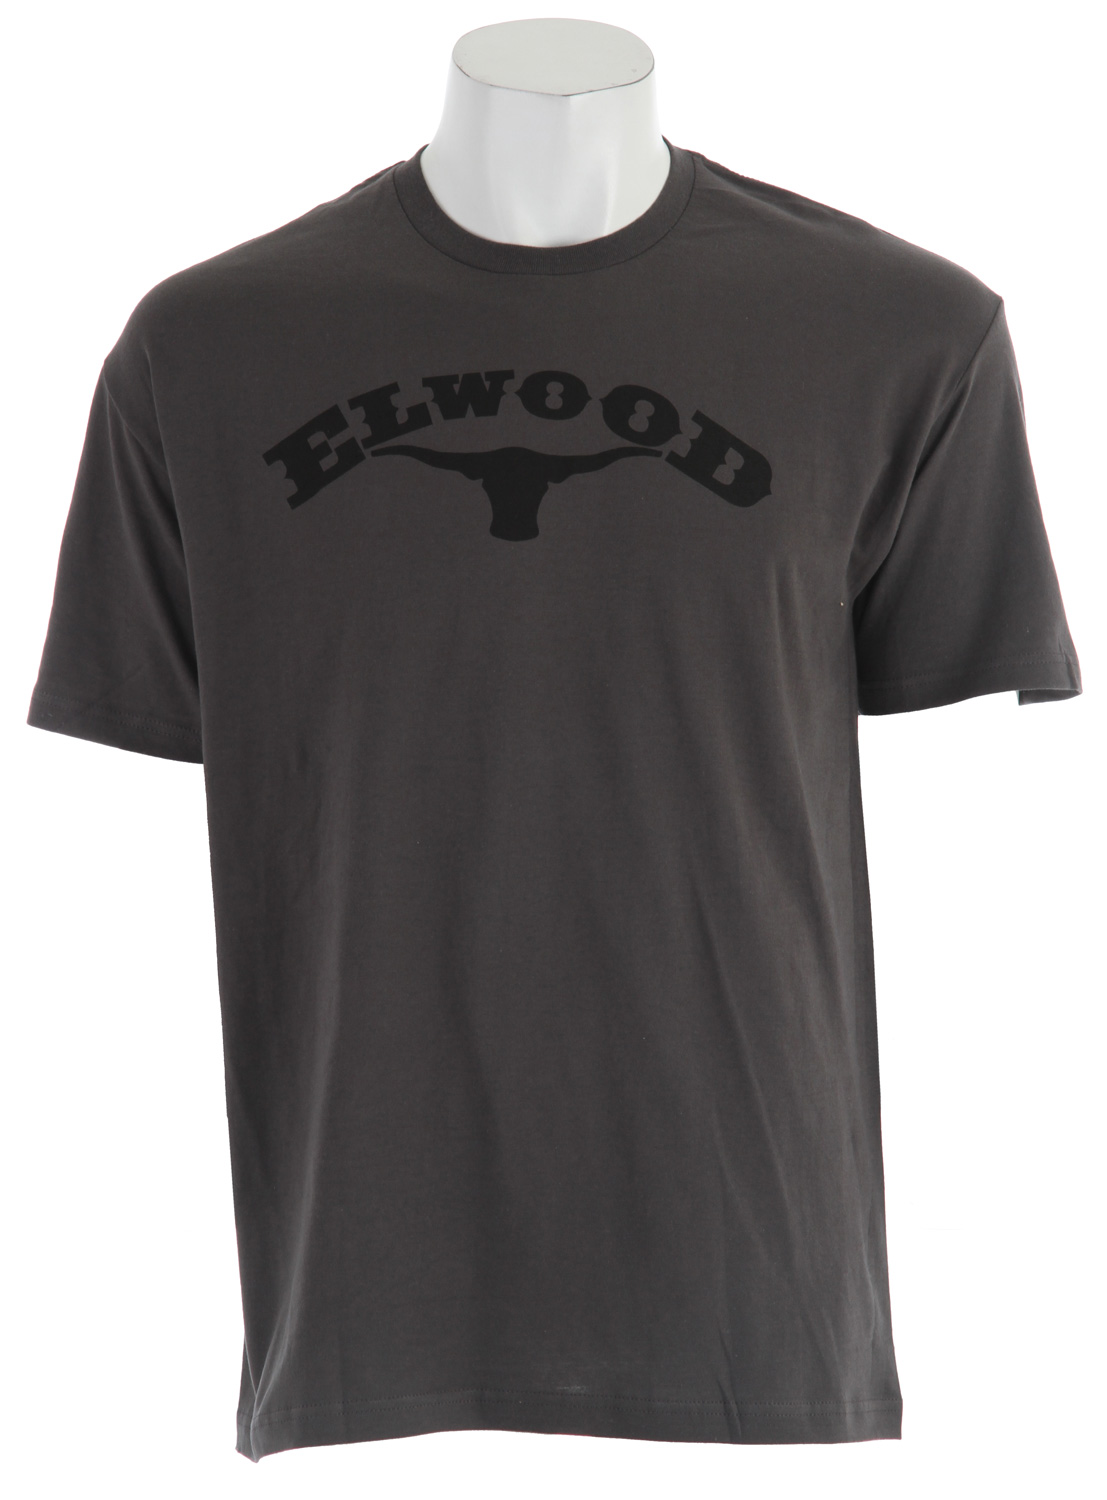 From the company that set the bar for skate-worthy apparel comes another timeless t-shirt design. The Elwood Old West T-shirt is a nod to the original extreme lifestyle. Kick-ass pioneer spirit shows in the longhorn silhouetted on this t-shirt's chest, with horns that span the Elwood name. Enjoy flawless fit and incomparable comfort in this all cotton short sleeve crew neck tee. Elwood apparel always exceeds expectations, and their Old West natural fiber t-shirt is no exception. - $13.95